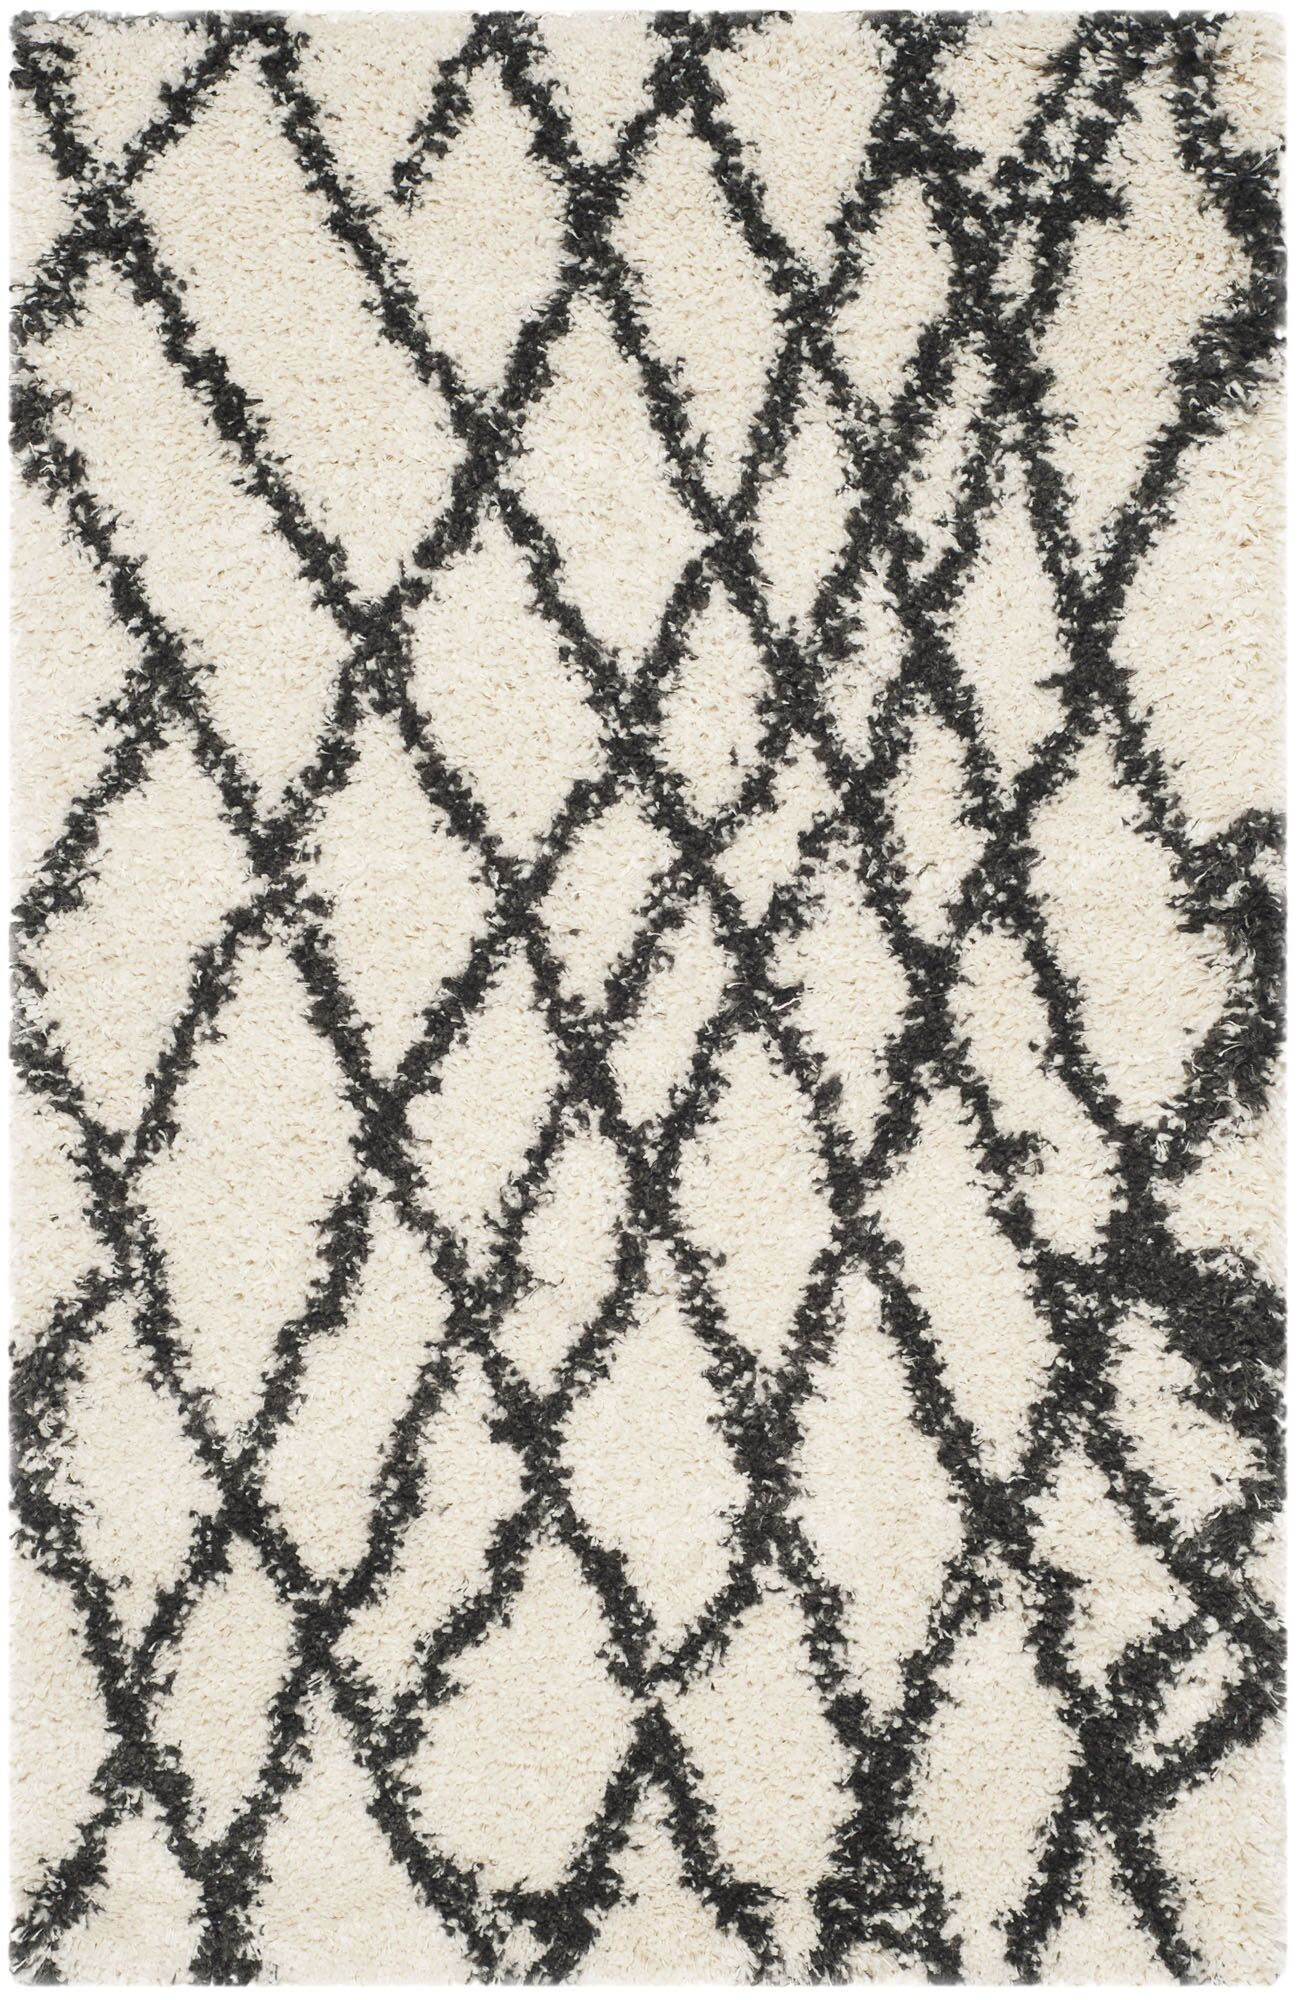 Malibu Ivory/Charcoal Area Rug Rug Size: Rectangle 3' x 5'